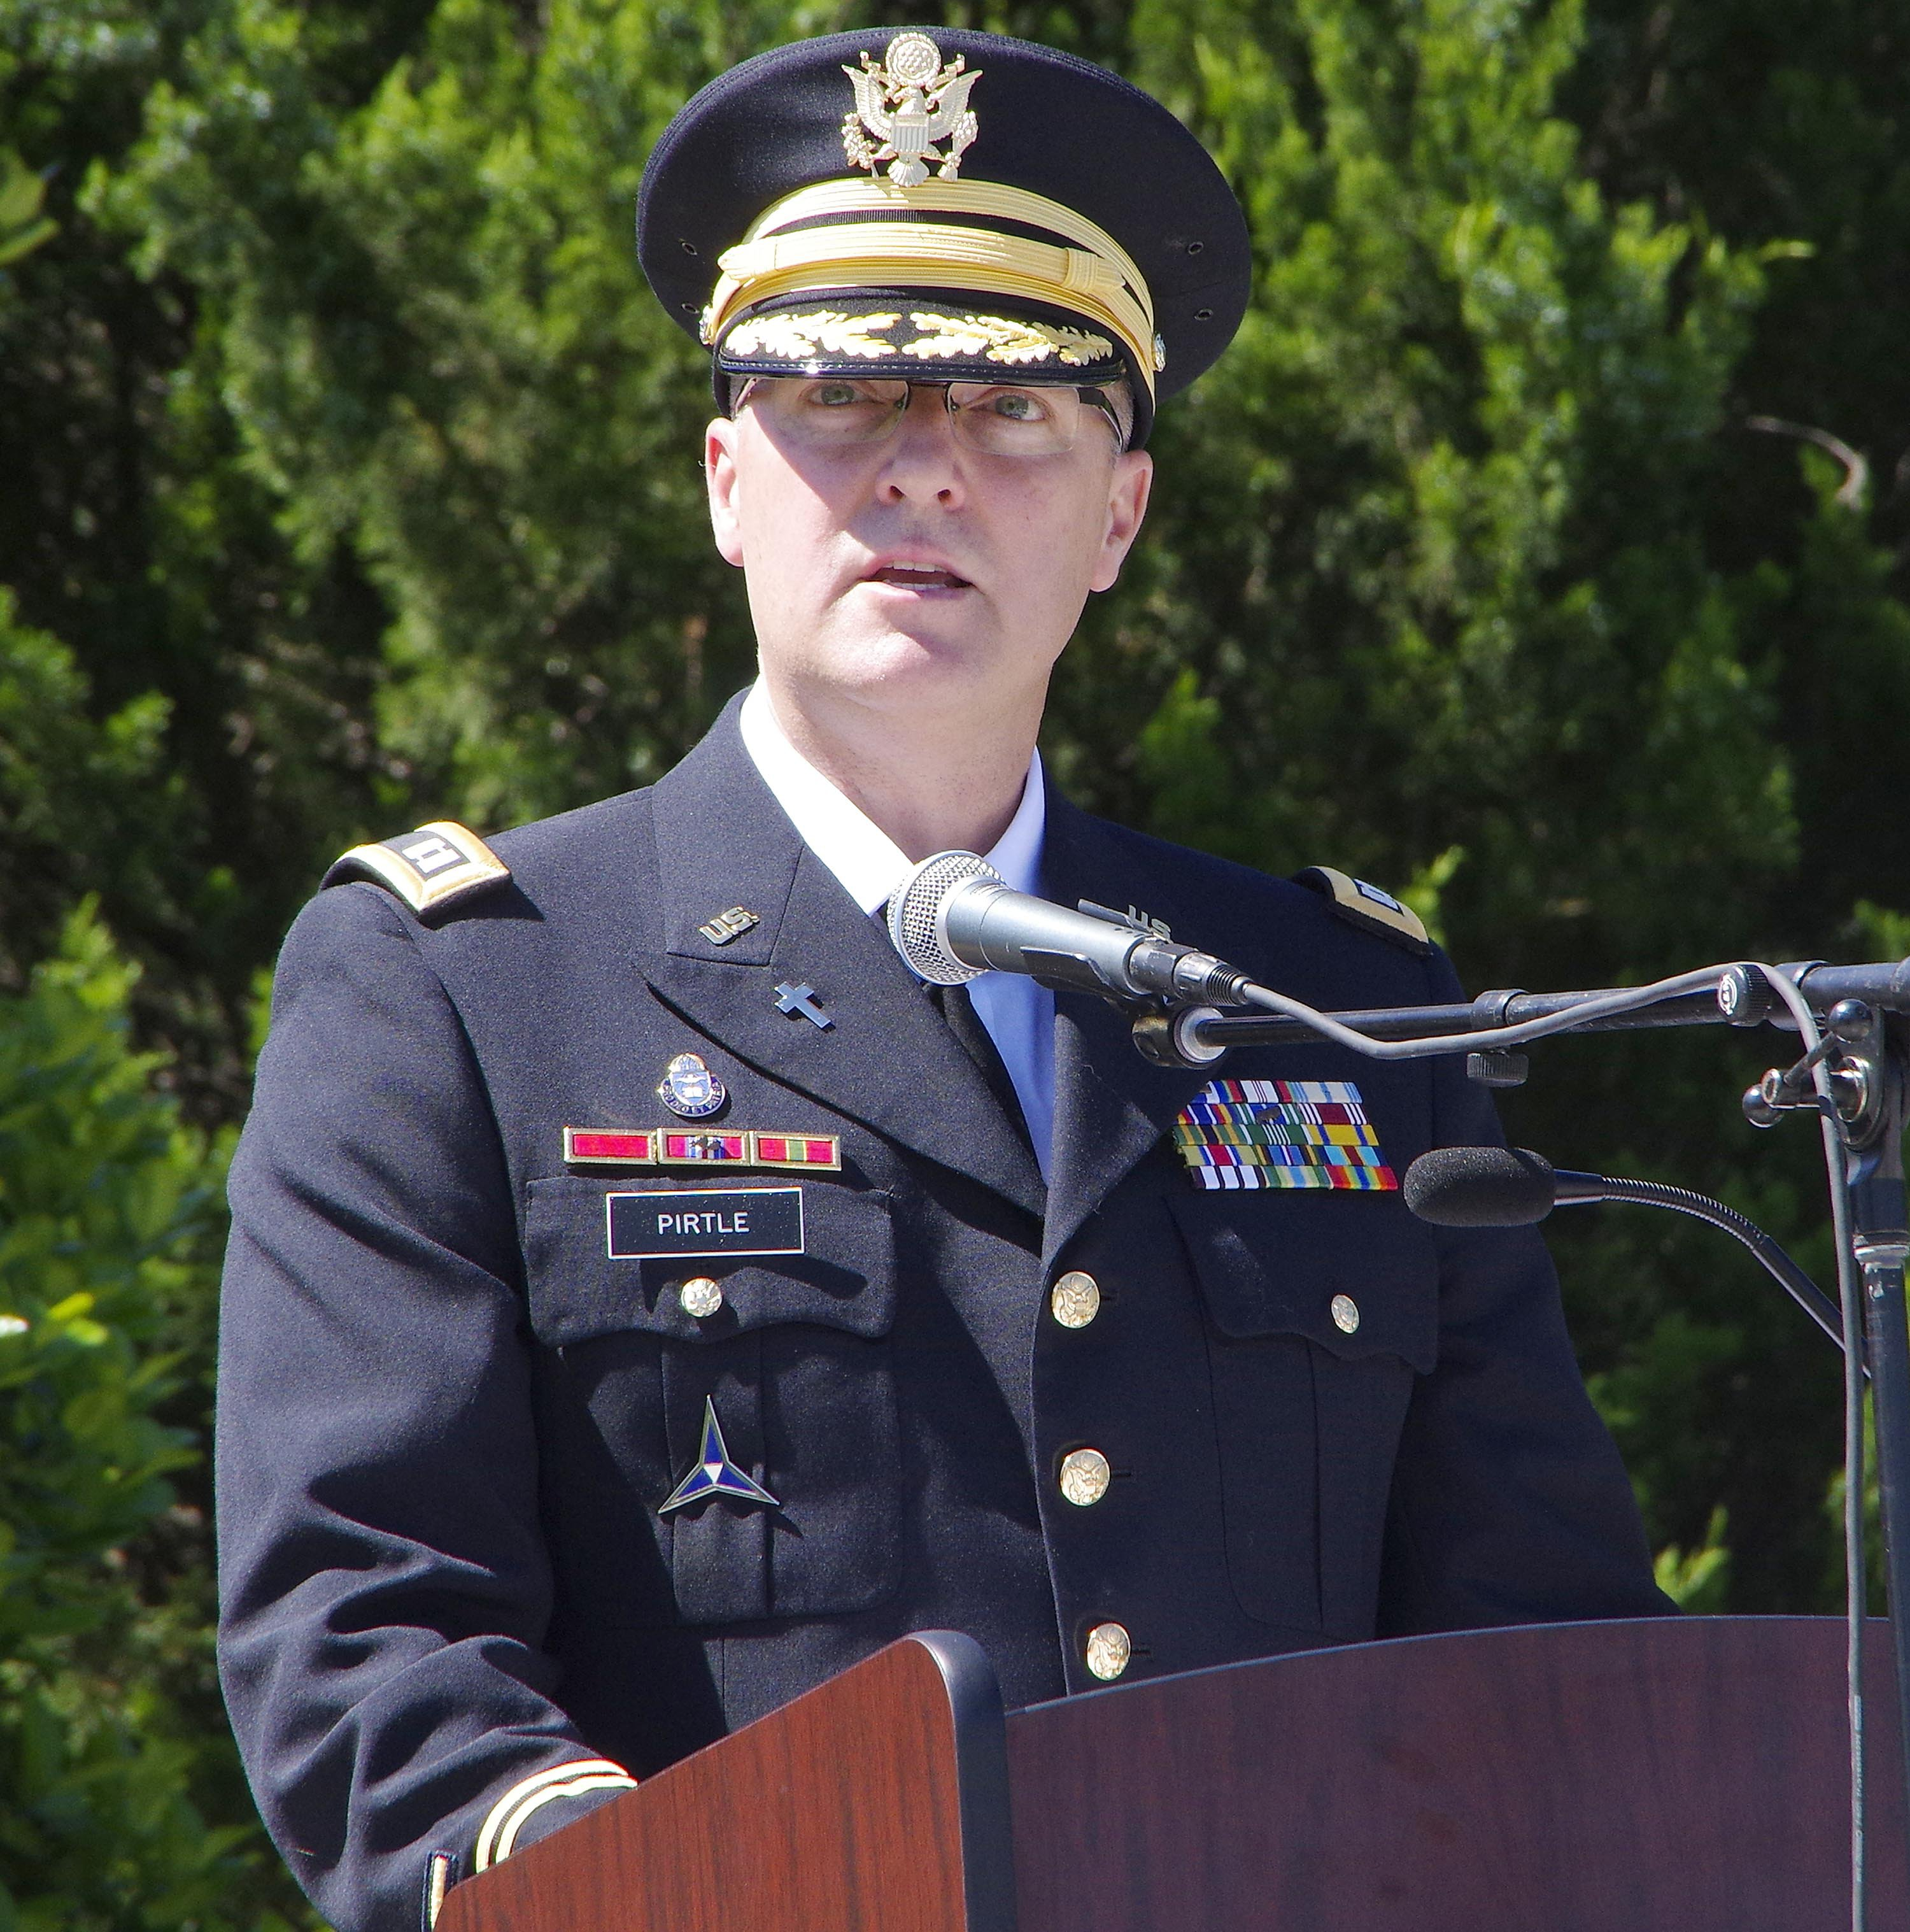 Chaplain CPT Jon Pirtle speaks before giving the invocation